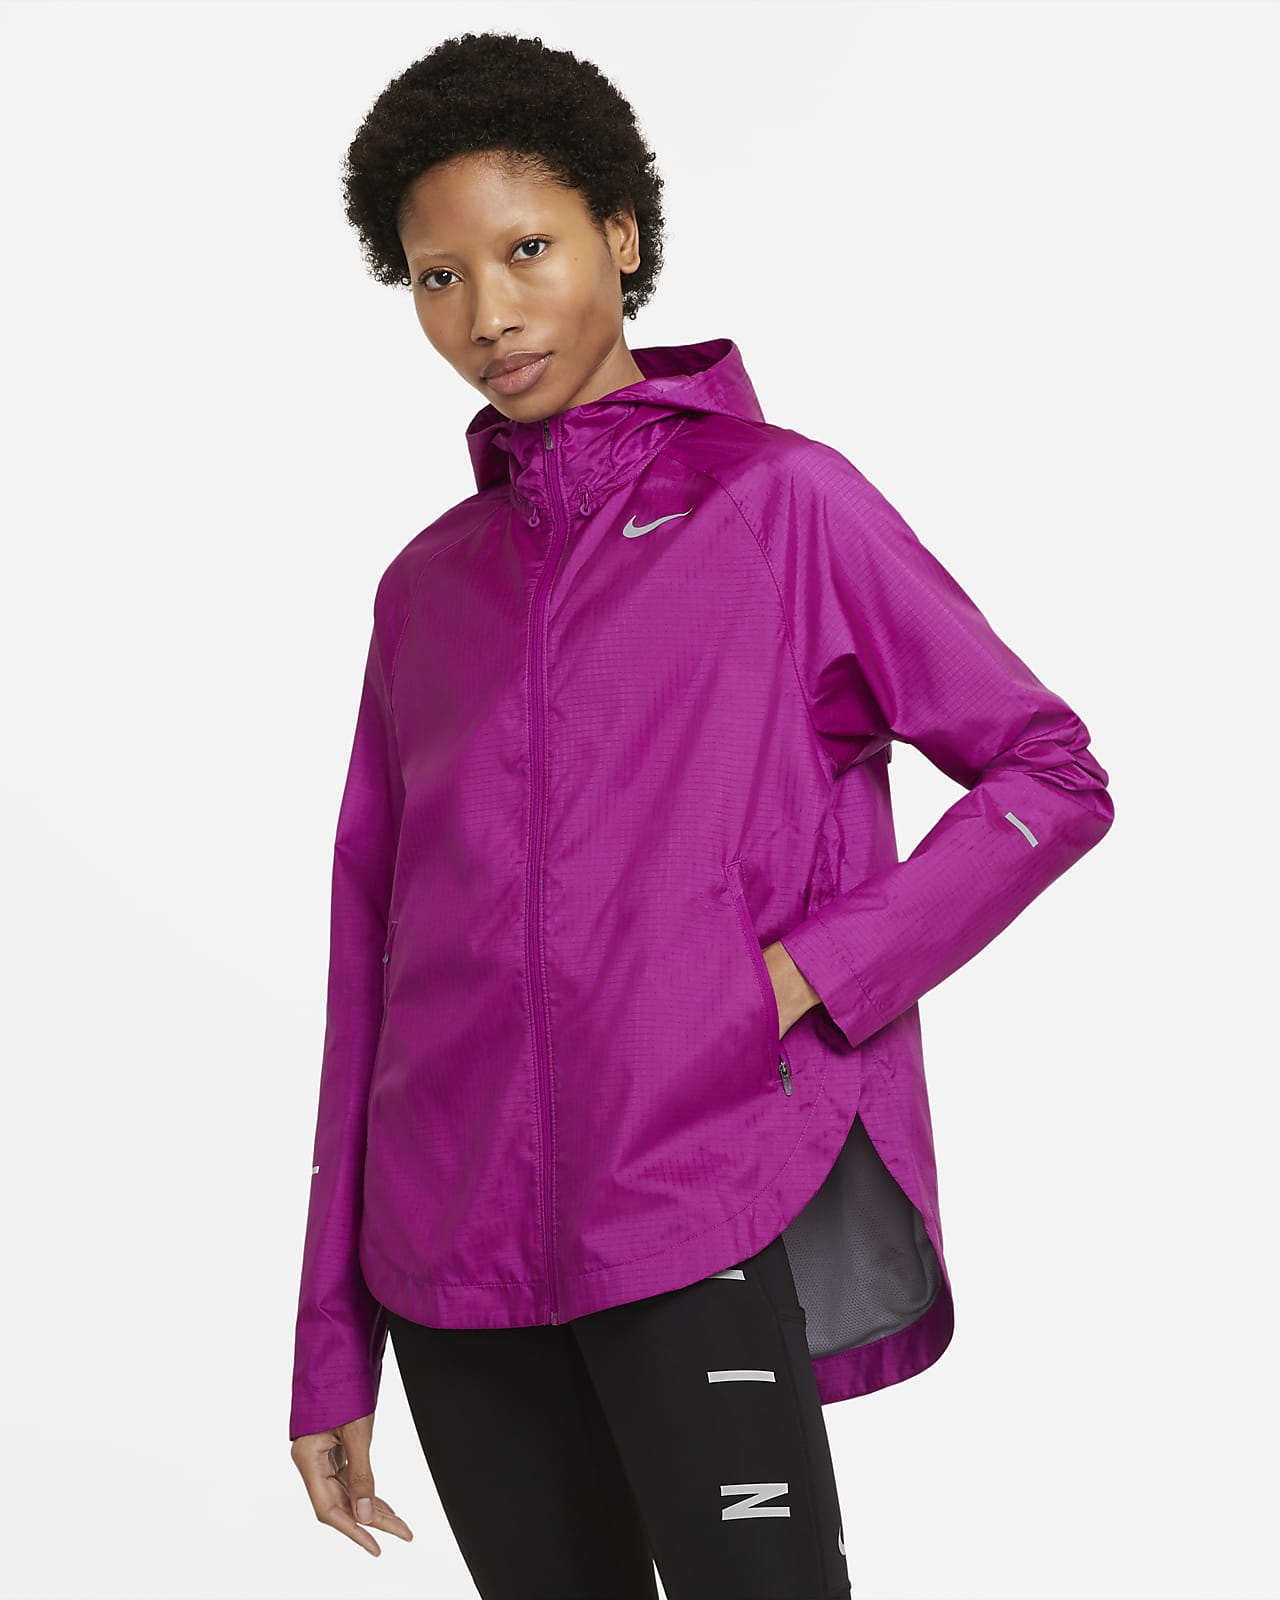 Nike Essential Run Division Women's Running Jacket